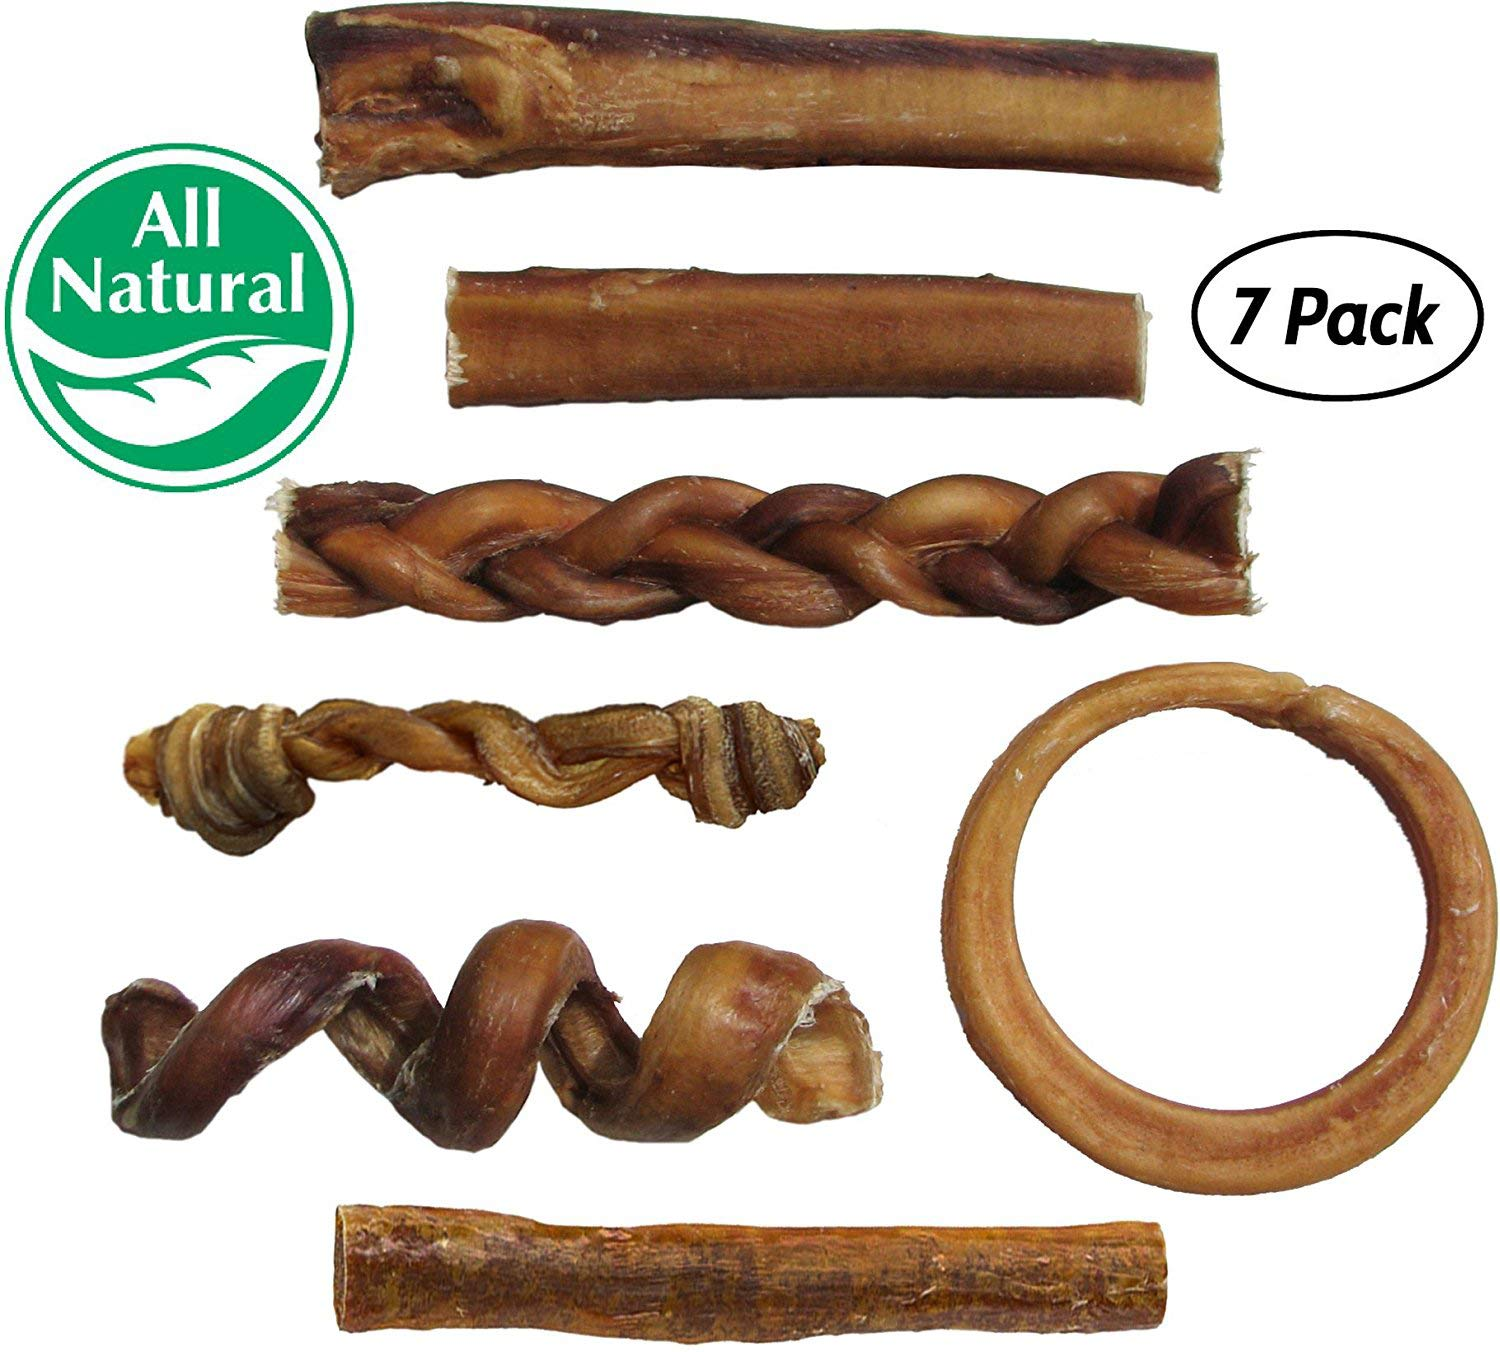 Bully Stick Variety Pack - Includes 7 Different Thick Low-Odor Bully Sticks for Dogs, Best Beef Pizzle Stix Dog Treats, Natural Dental Dog Chews: Straight, Braided, Ring, Spring, More